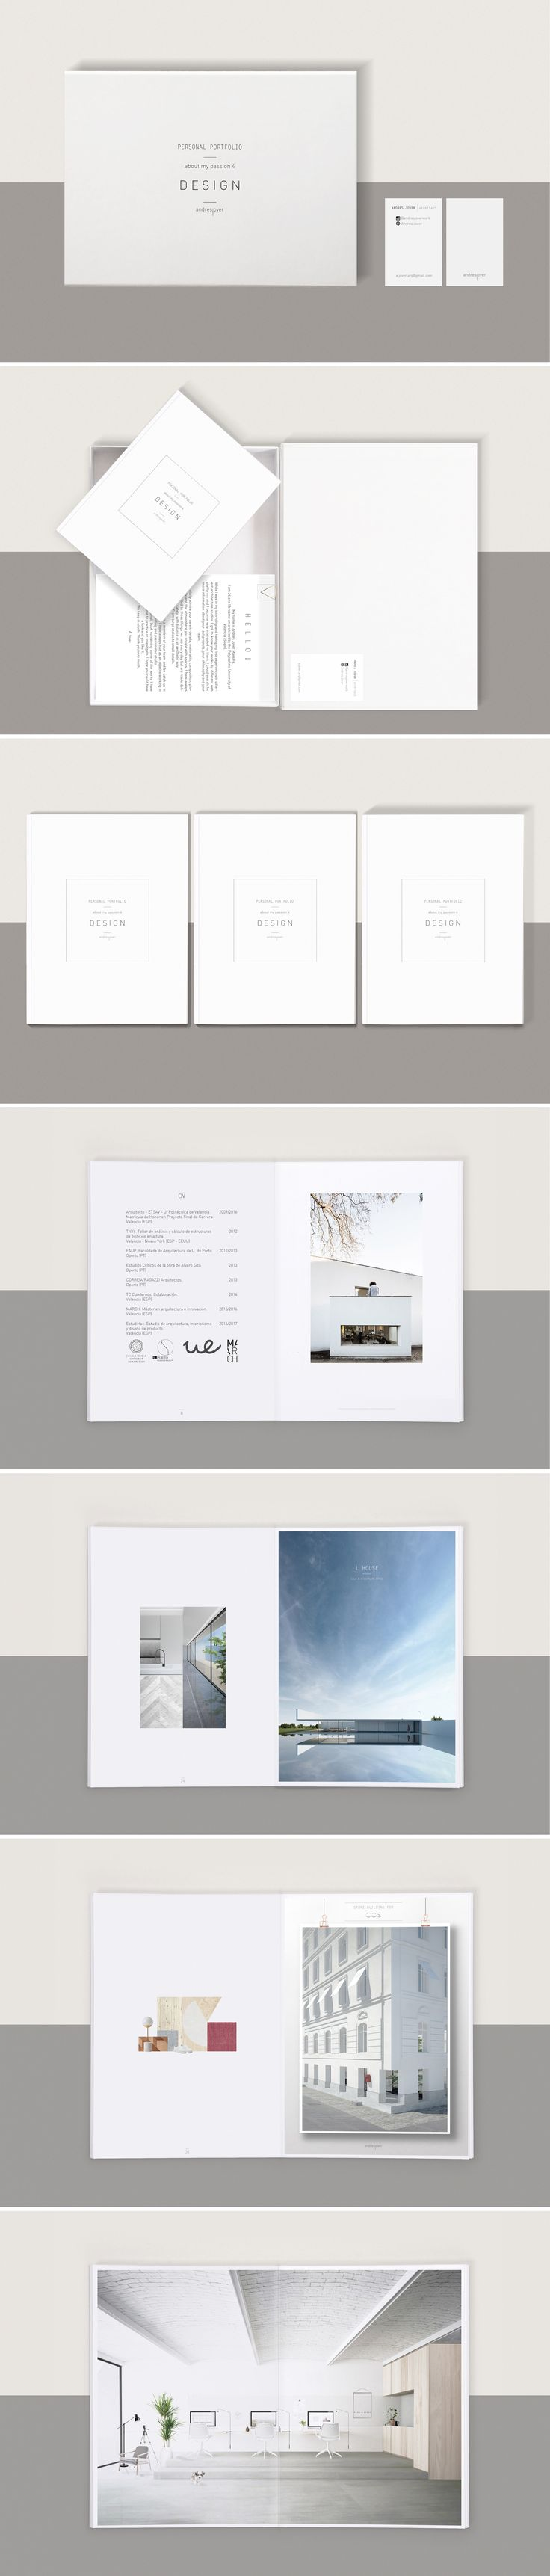 Exceptionnel Best 25+ Architecture portfolio layout ideas on Pinterest  XZ53